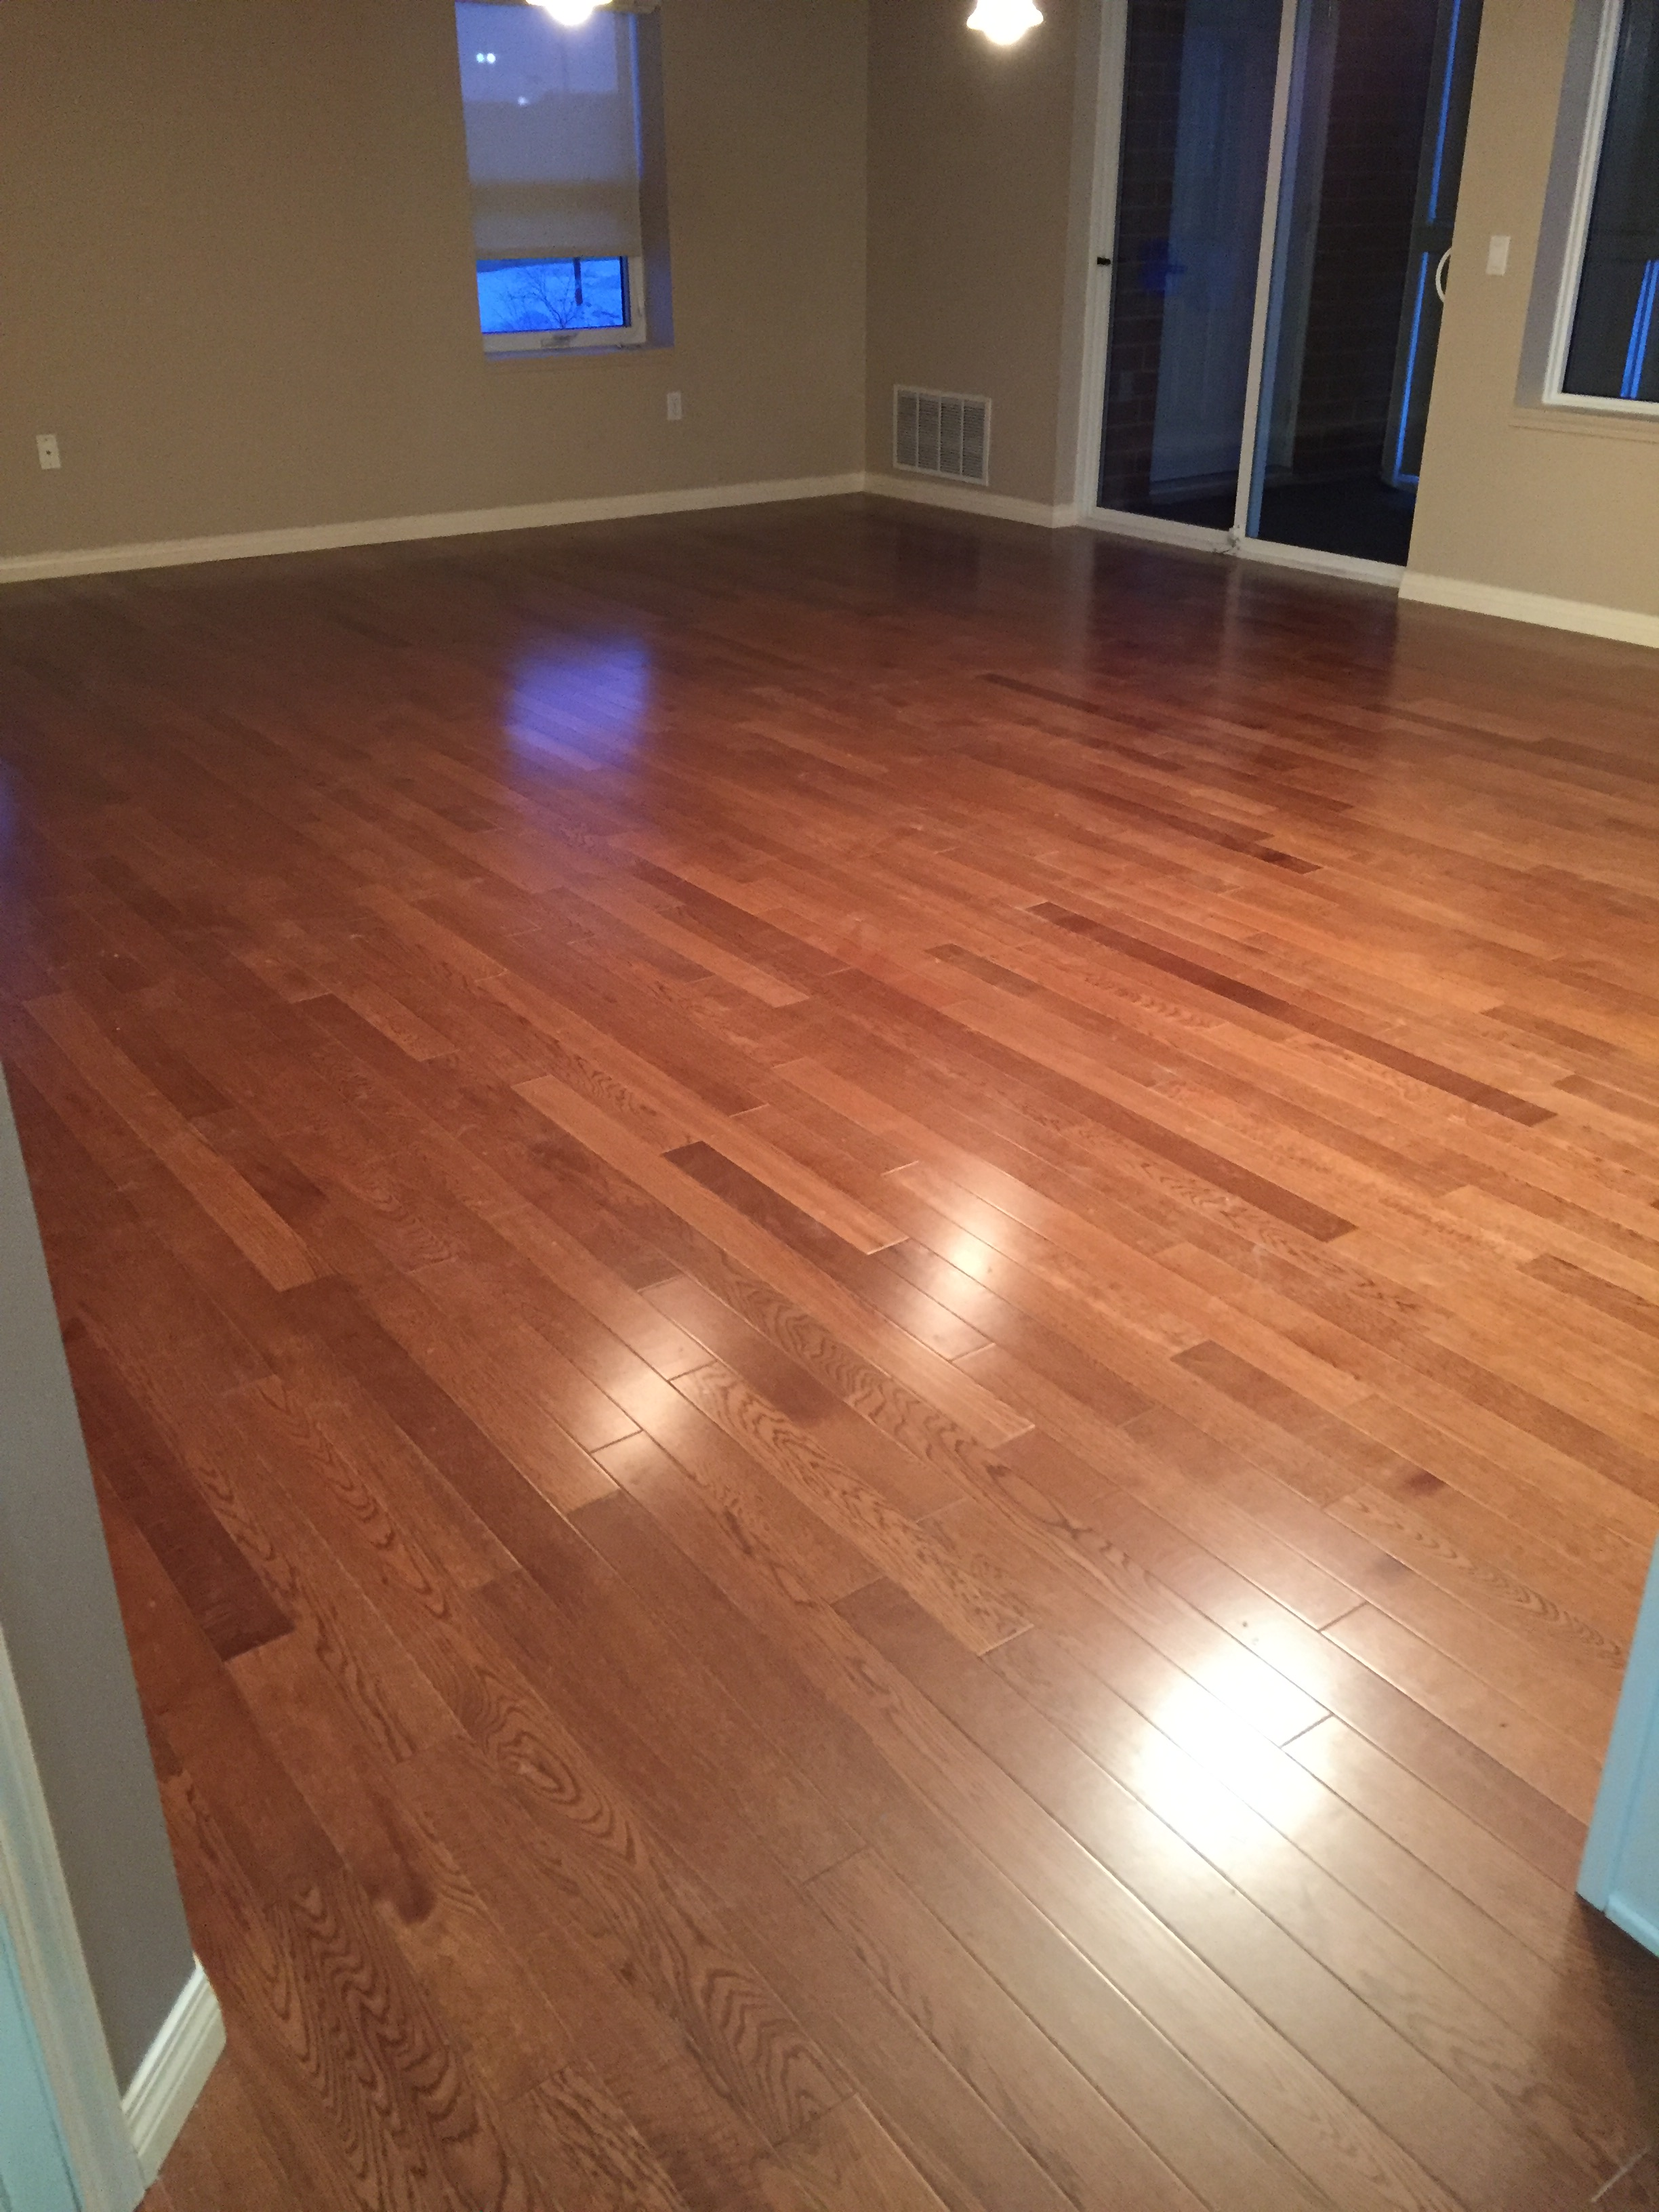 Custom design build group hardwood floor ceramic for Laminate flooring winnipeg